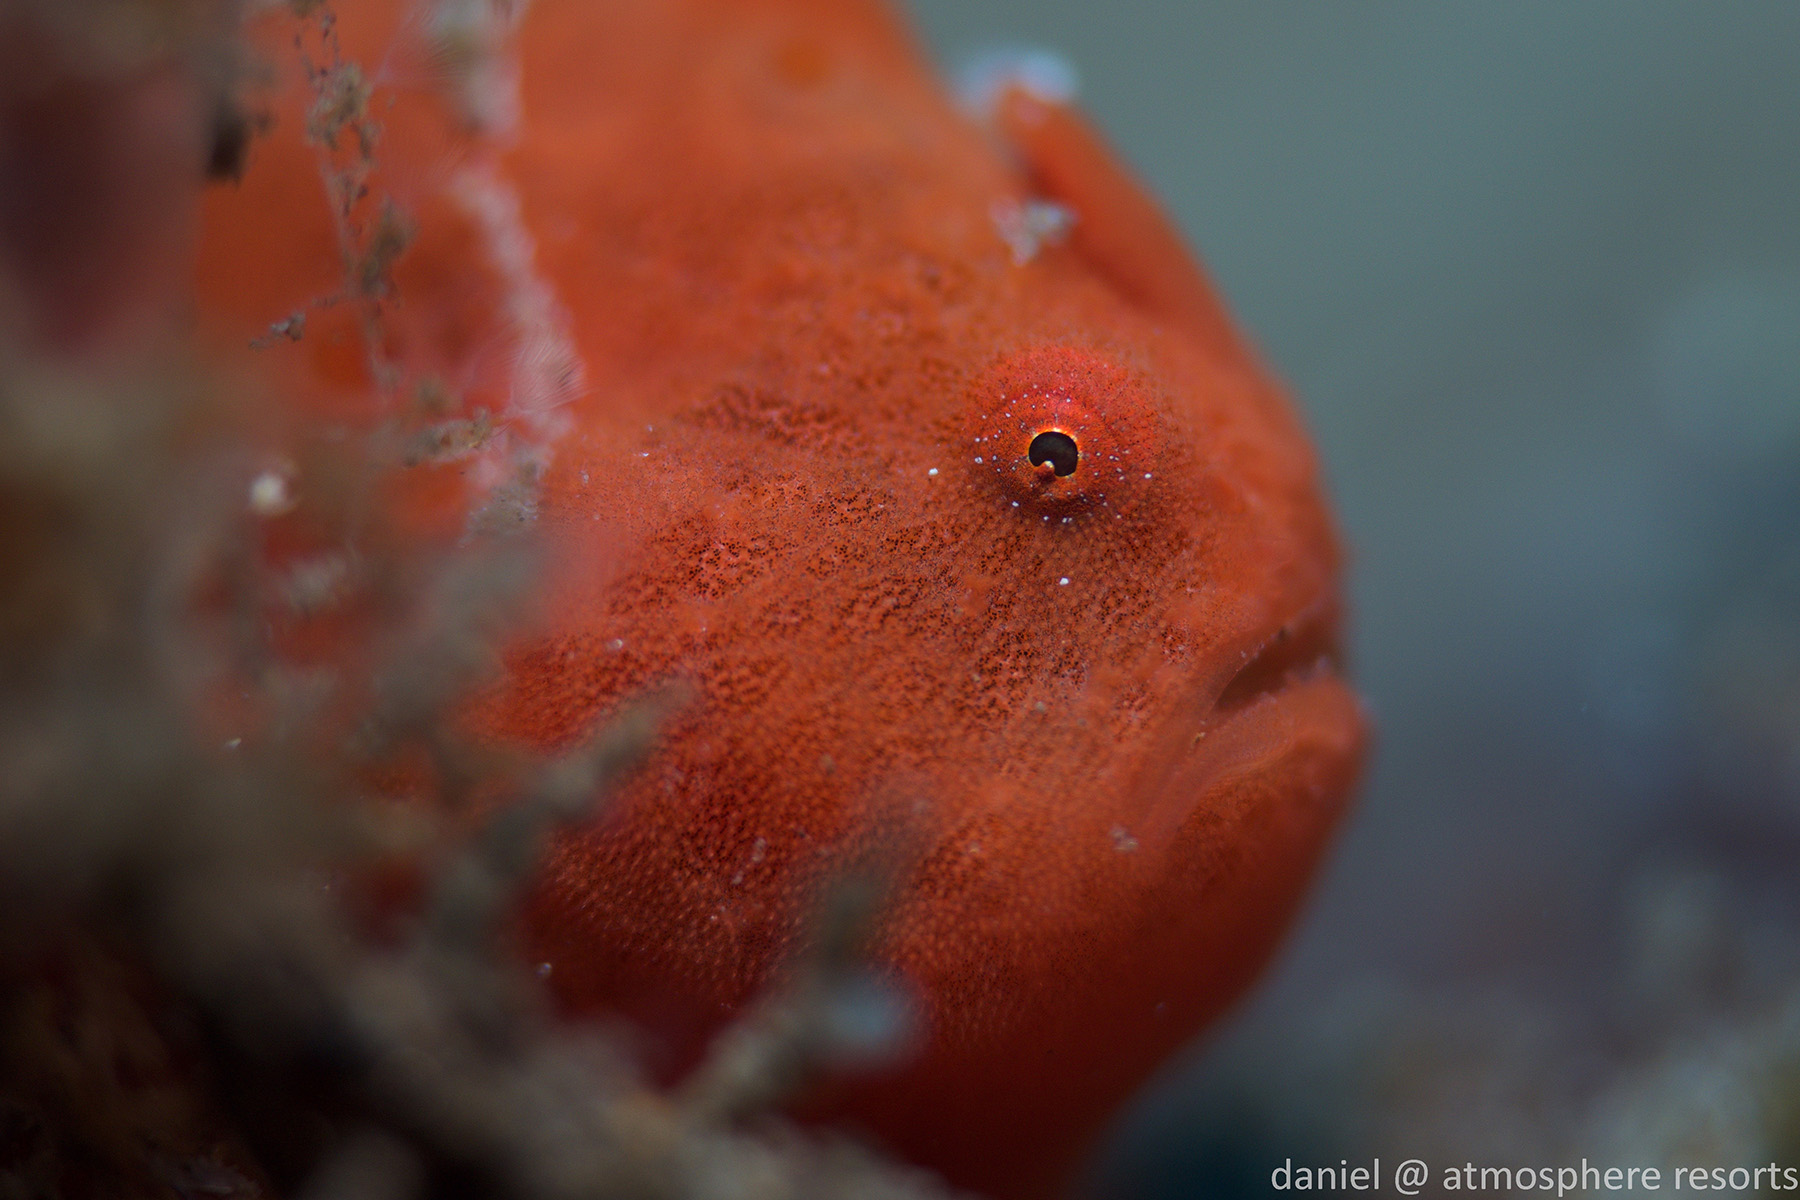 Baby frogfish are more common in Dauin Dumaguete Philippines than most other places. The SMURF research at Atmosphere Resort will hopefully explain why.